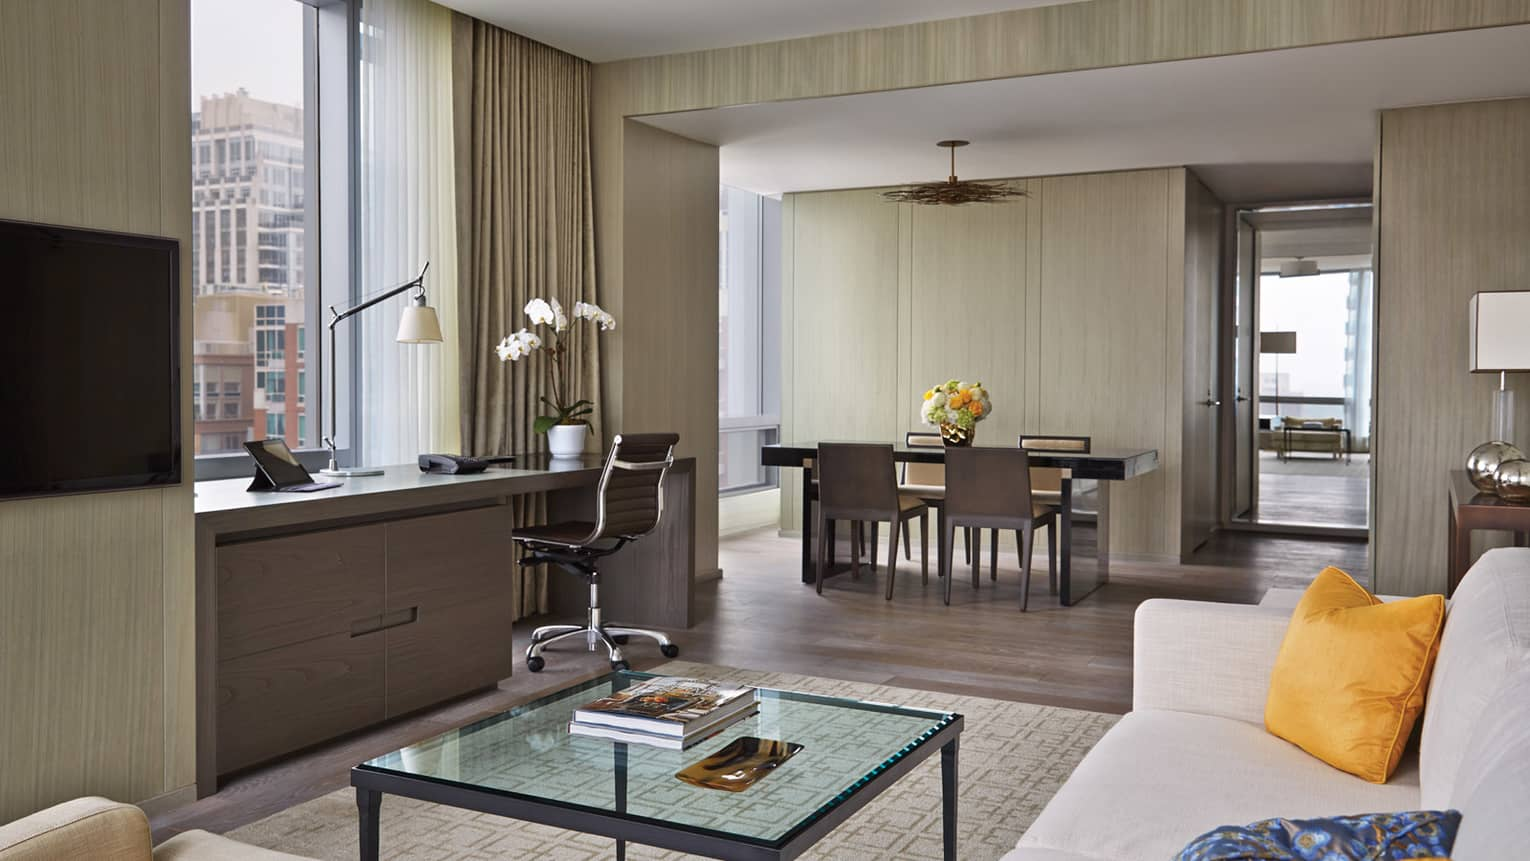 Yorkville Suite living room, glass table, desk under window, dining room by bedroom door